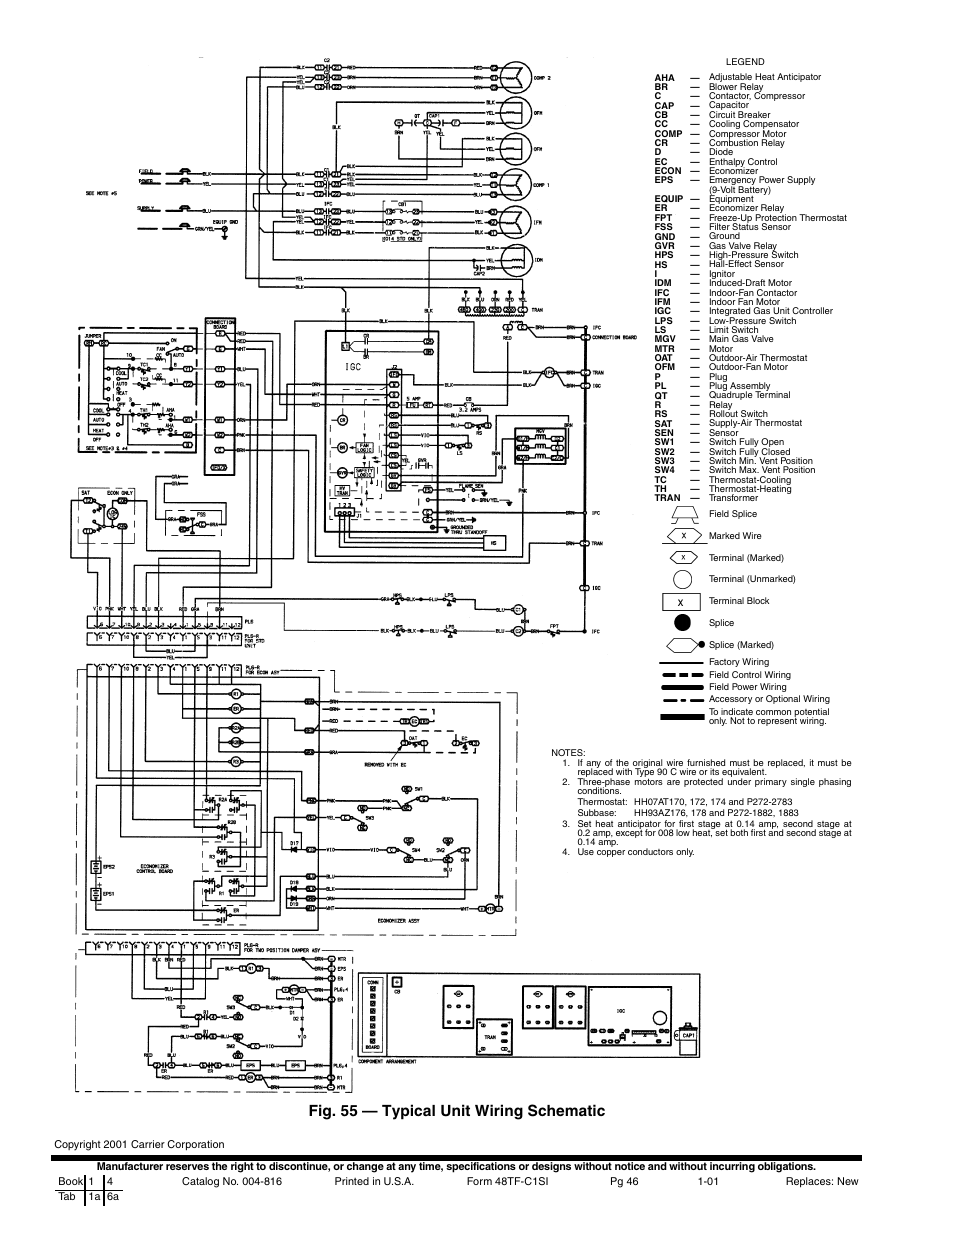 hight resolution of fig 55 typical unit wiring schematic carrier 48tfe008 014 user carrier rooftop unit wiring diagram 55